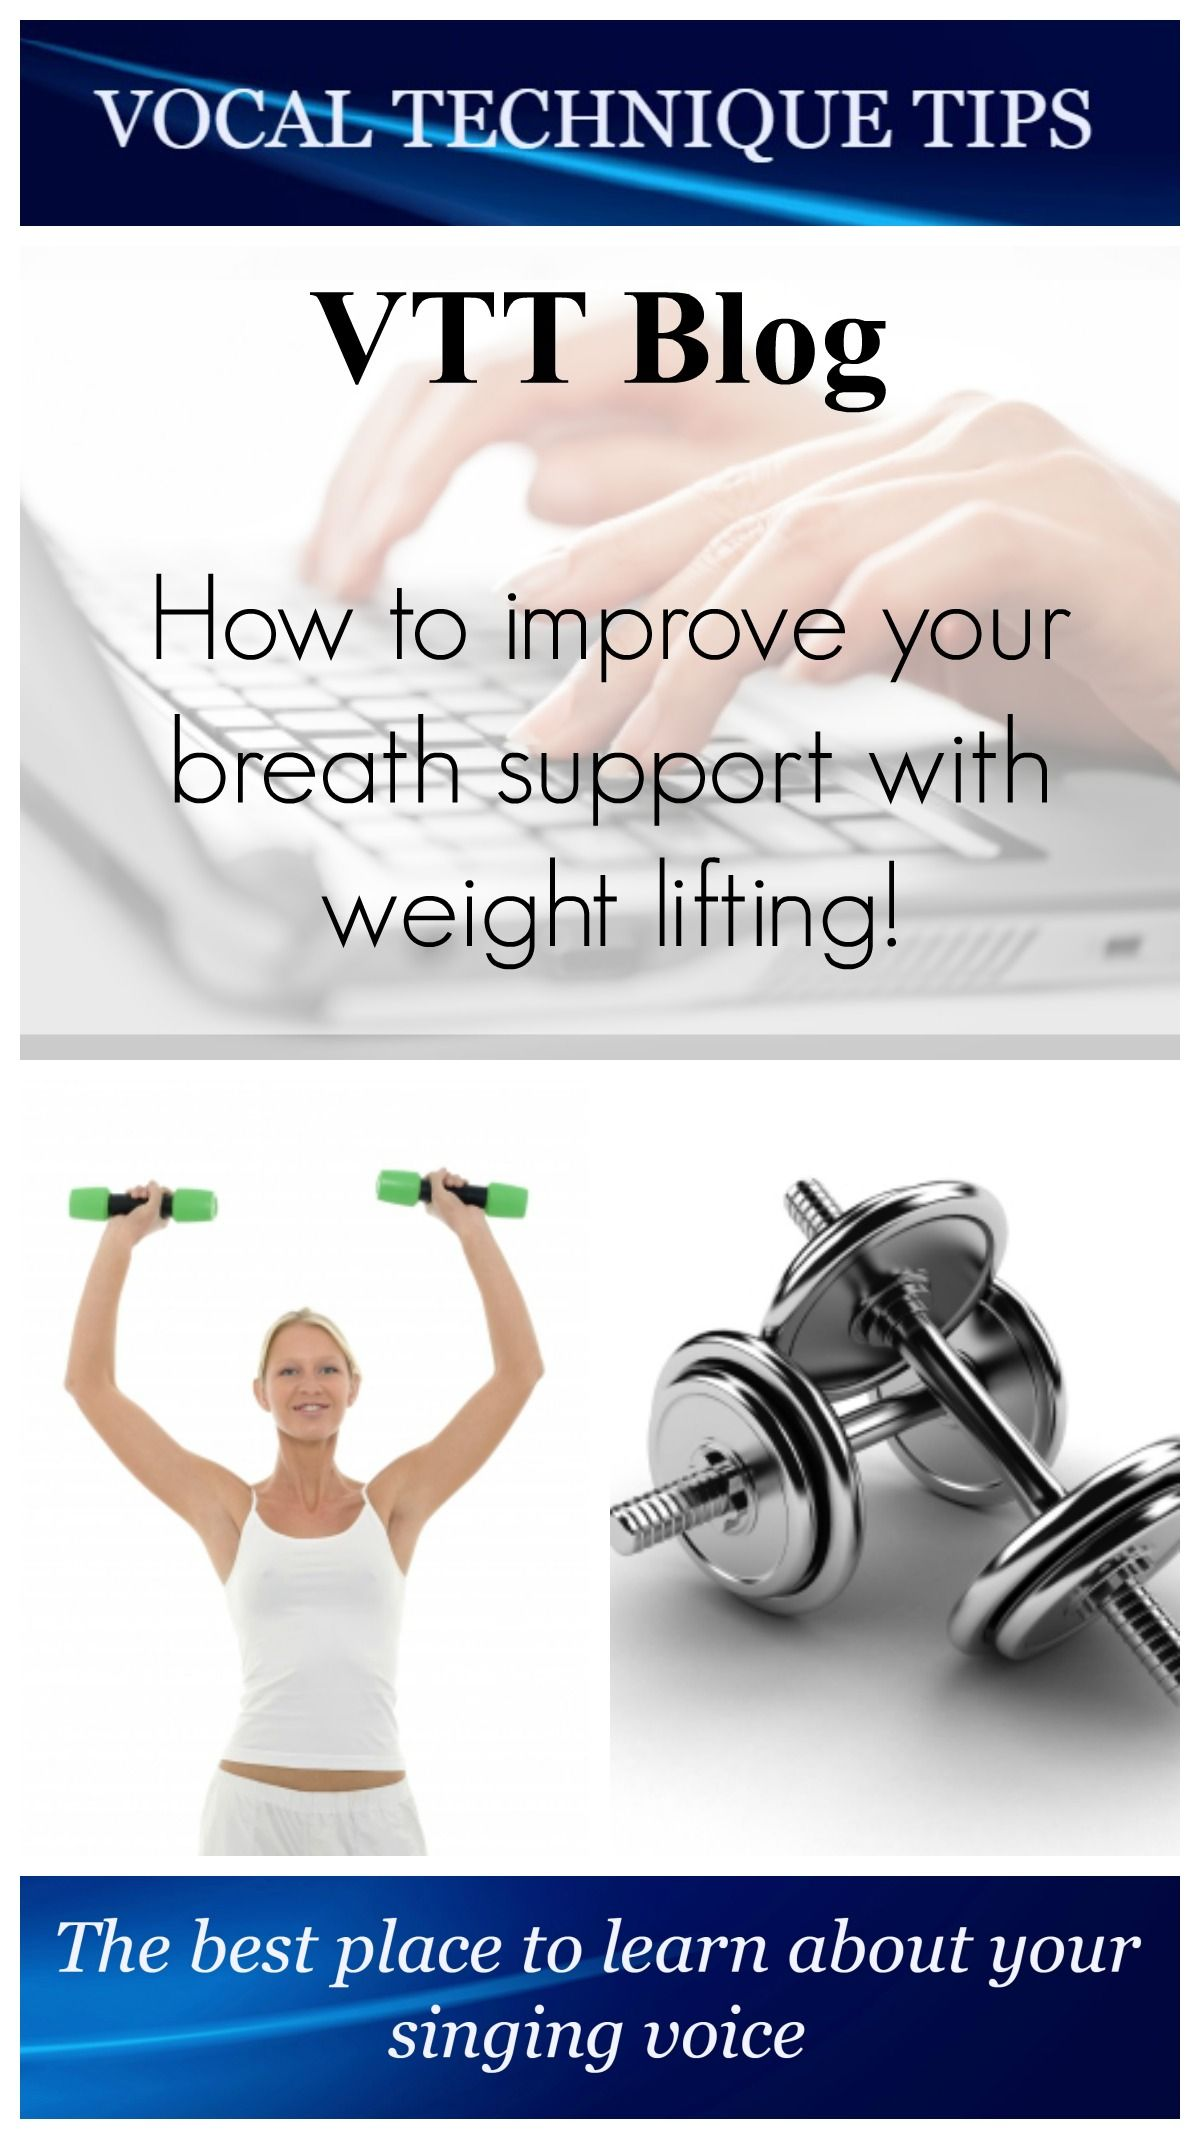 Breath support is something I've struggled with for years. But thanks to using dumbbells I found my strength!